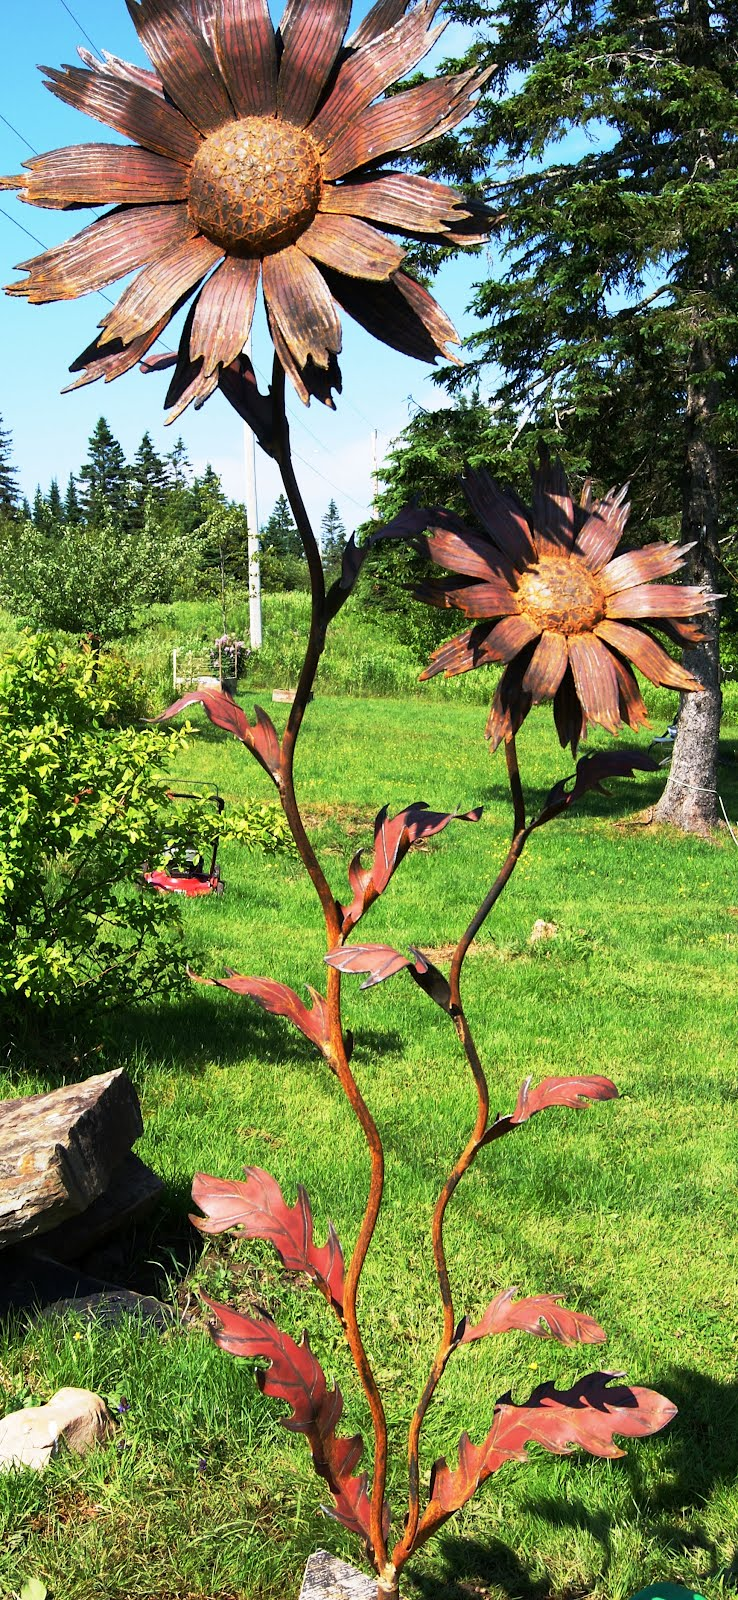 Metal Petals Garden Art: Beauty Comes In All Shapes and ...